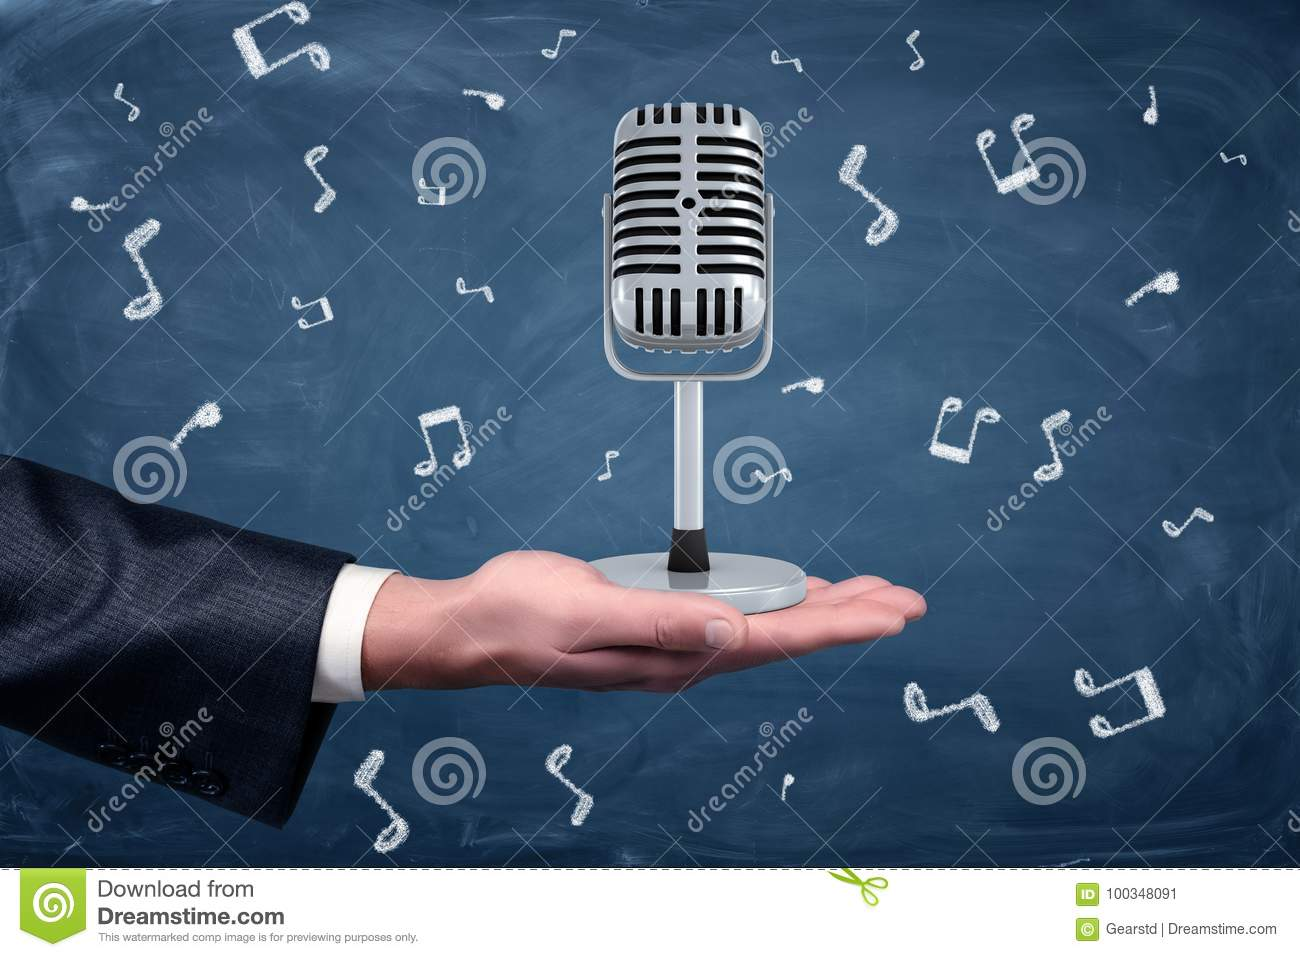 A small silver retro microphone standing on a businessman`s hand among music notes drawn on a blackboard background.